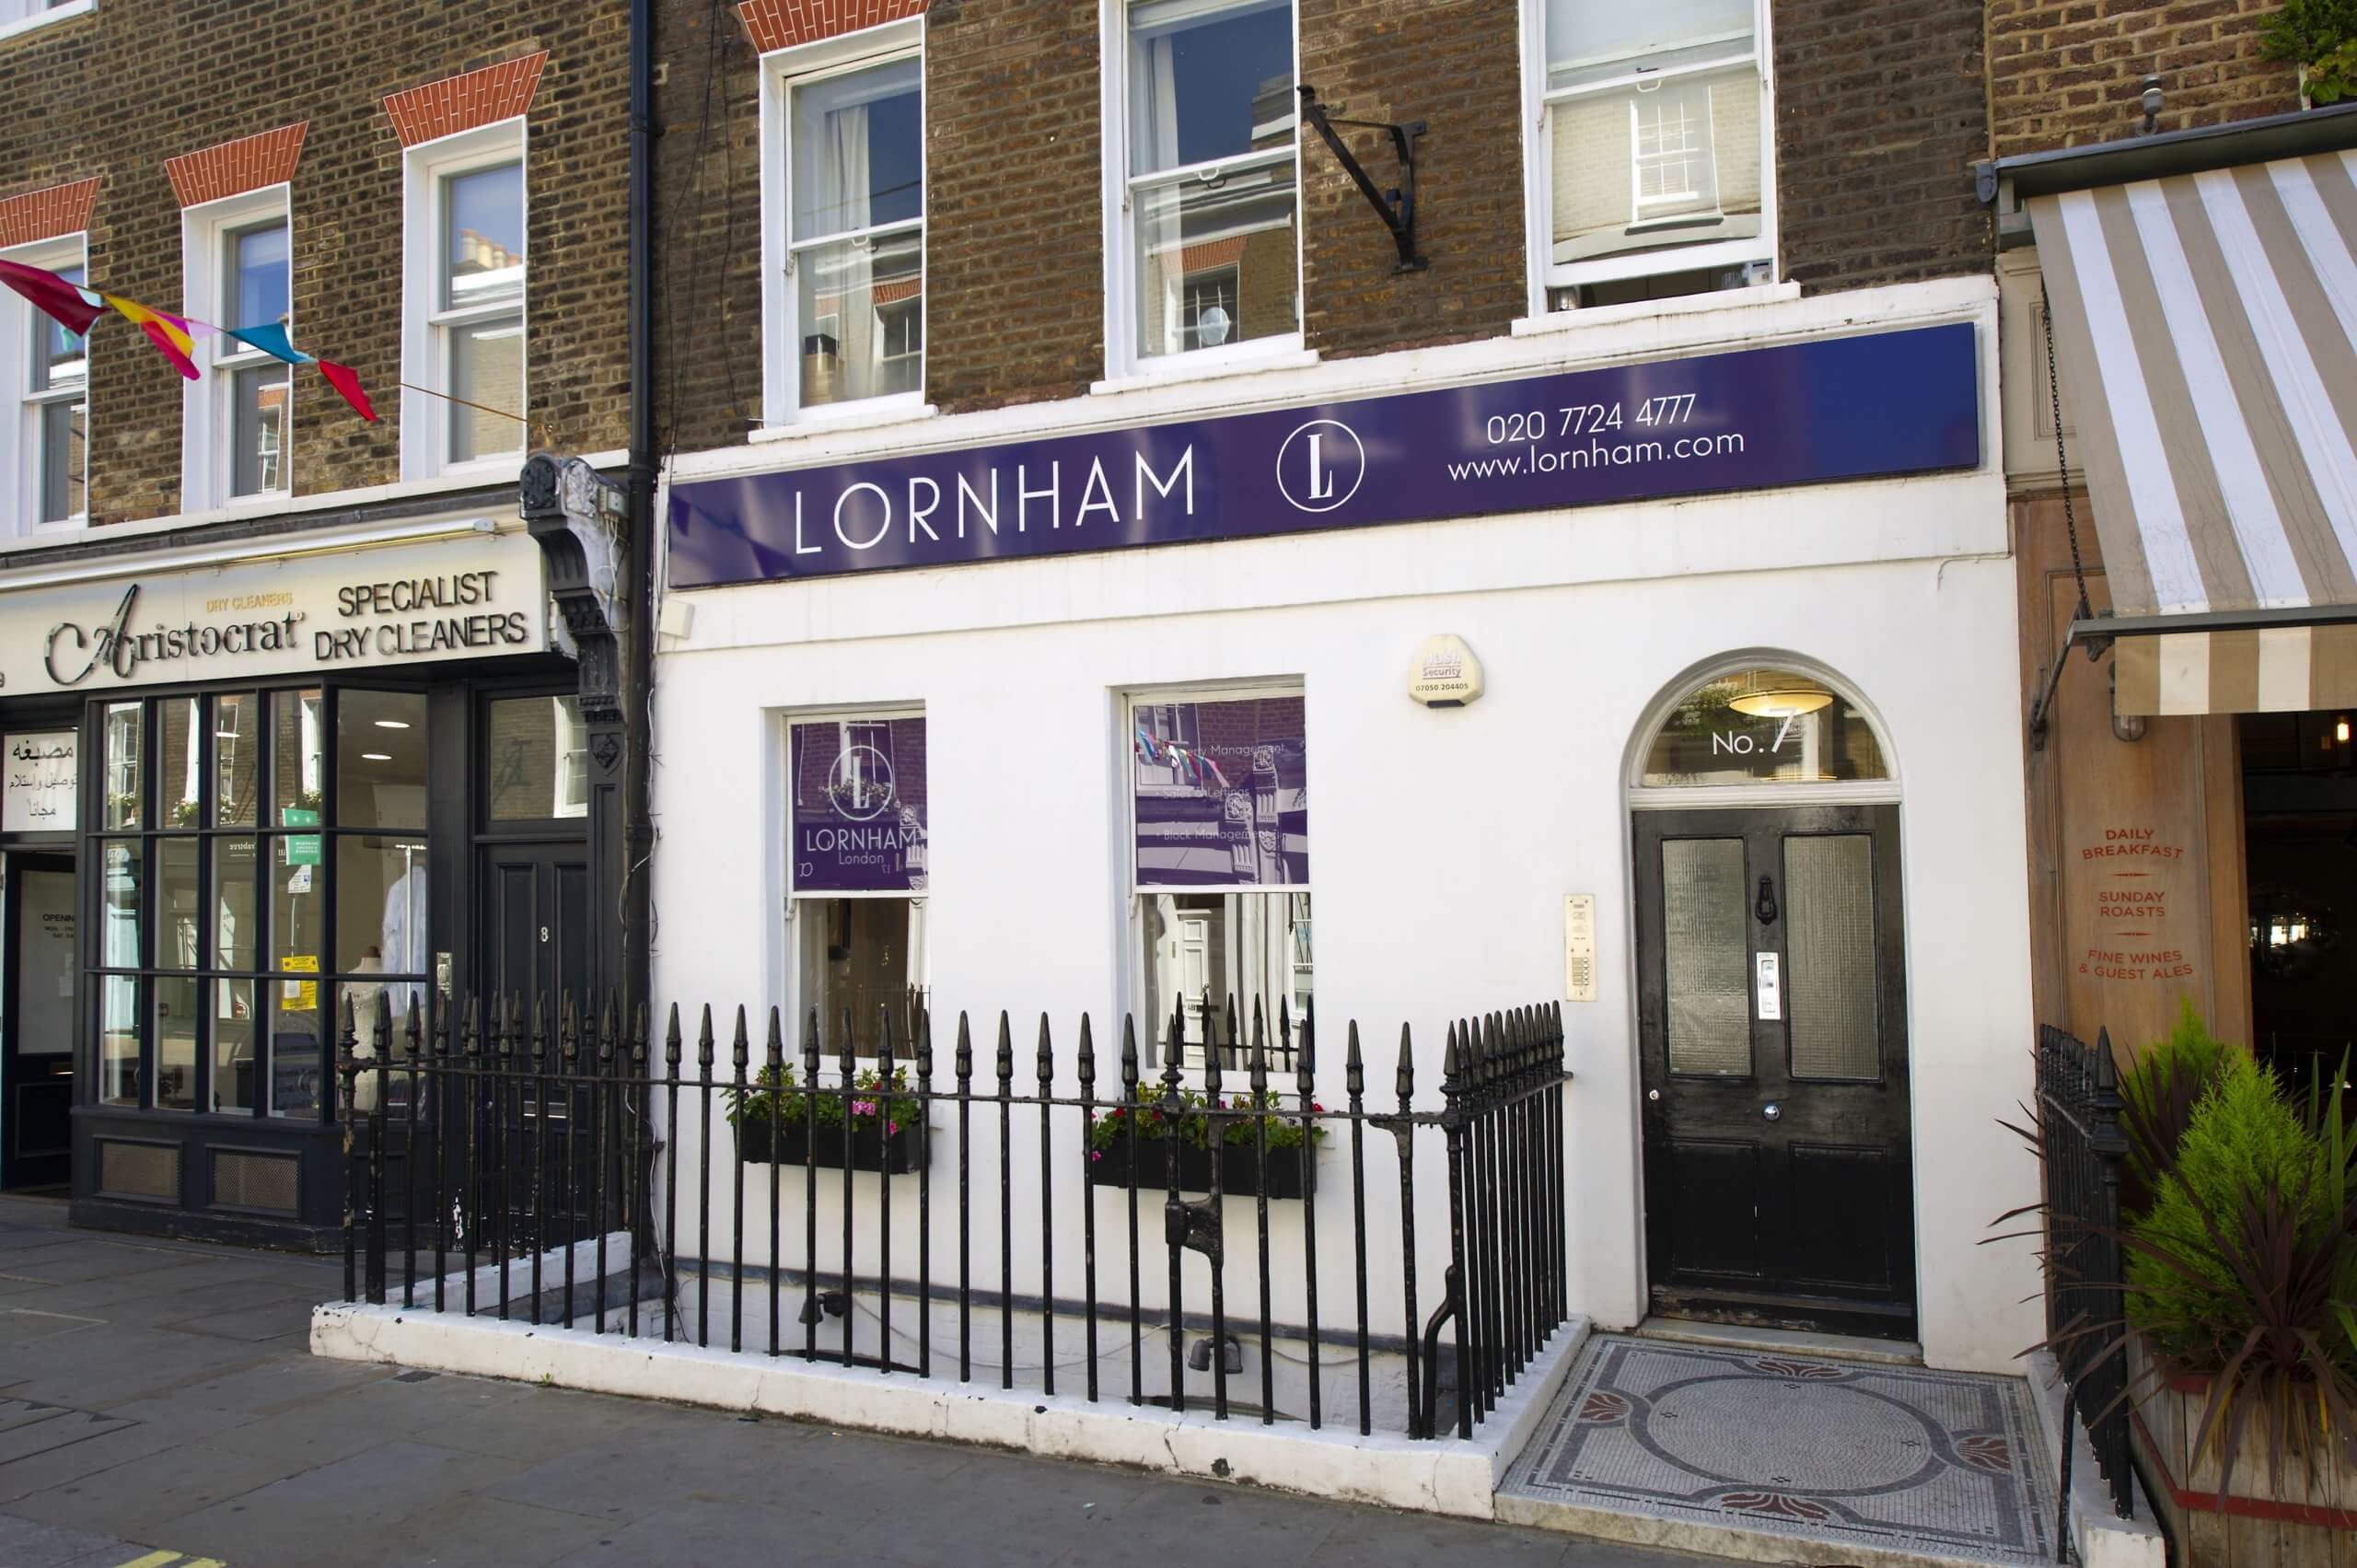 Lornham Office